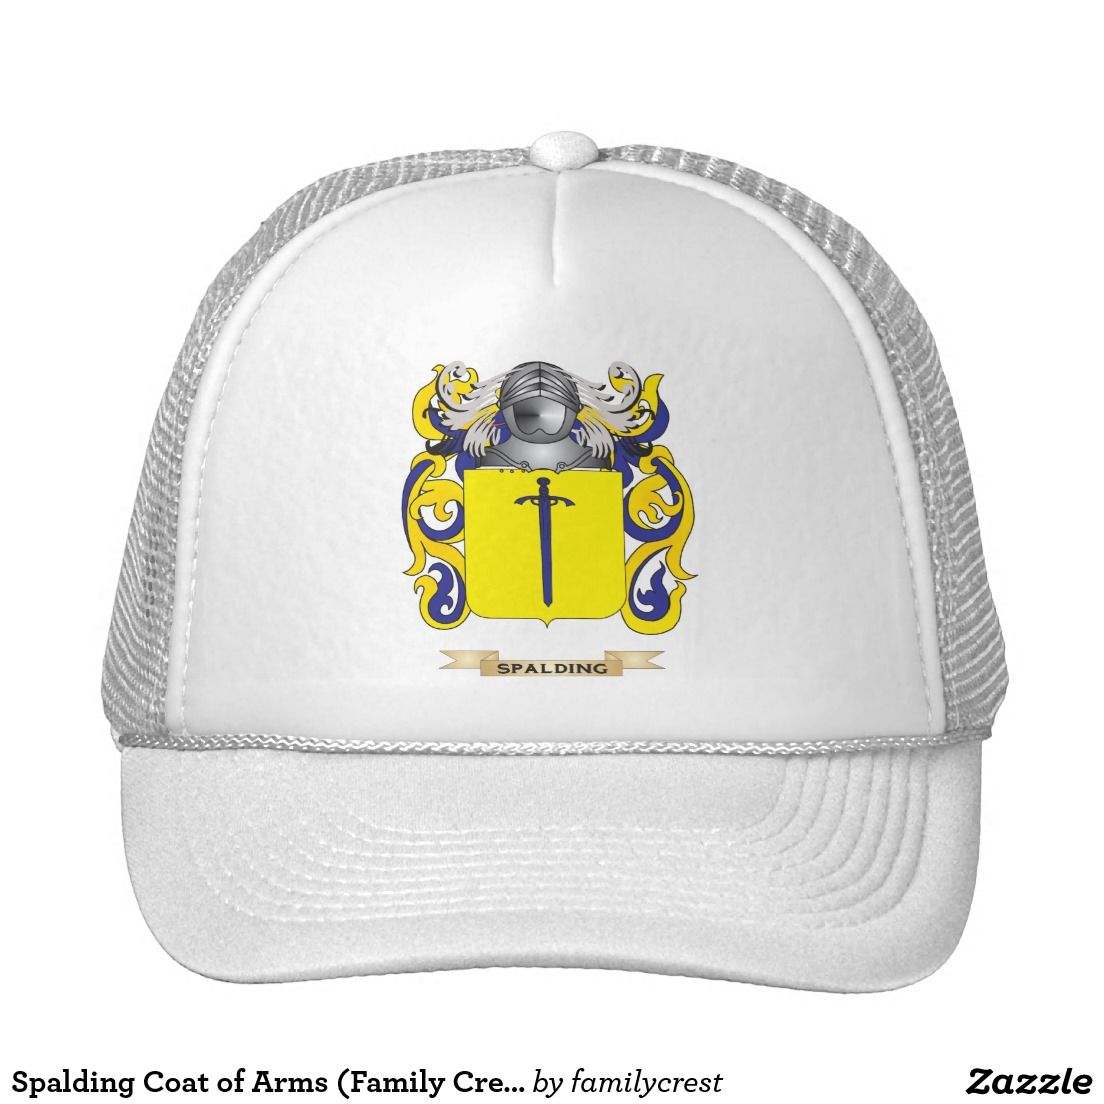 Spalding Coat of Arms (Family Crest) Trucker Hat